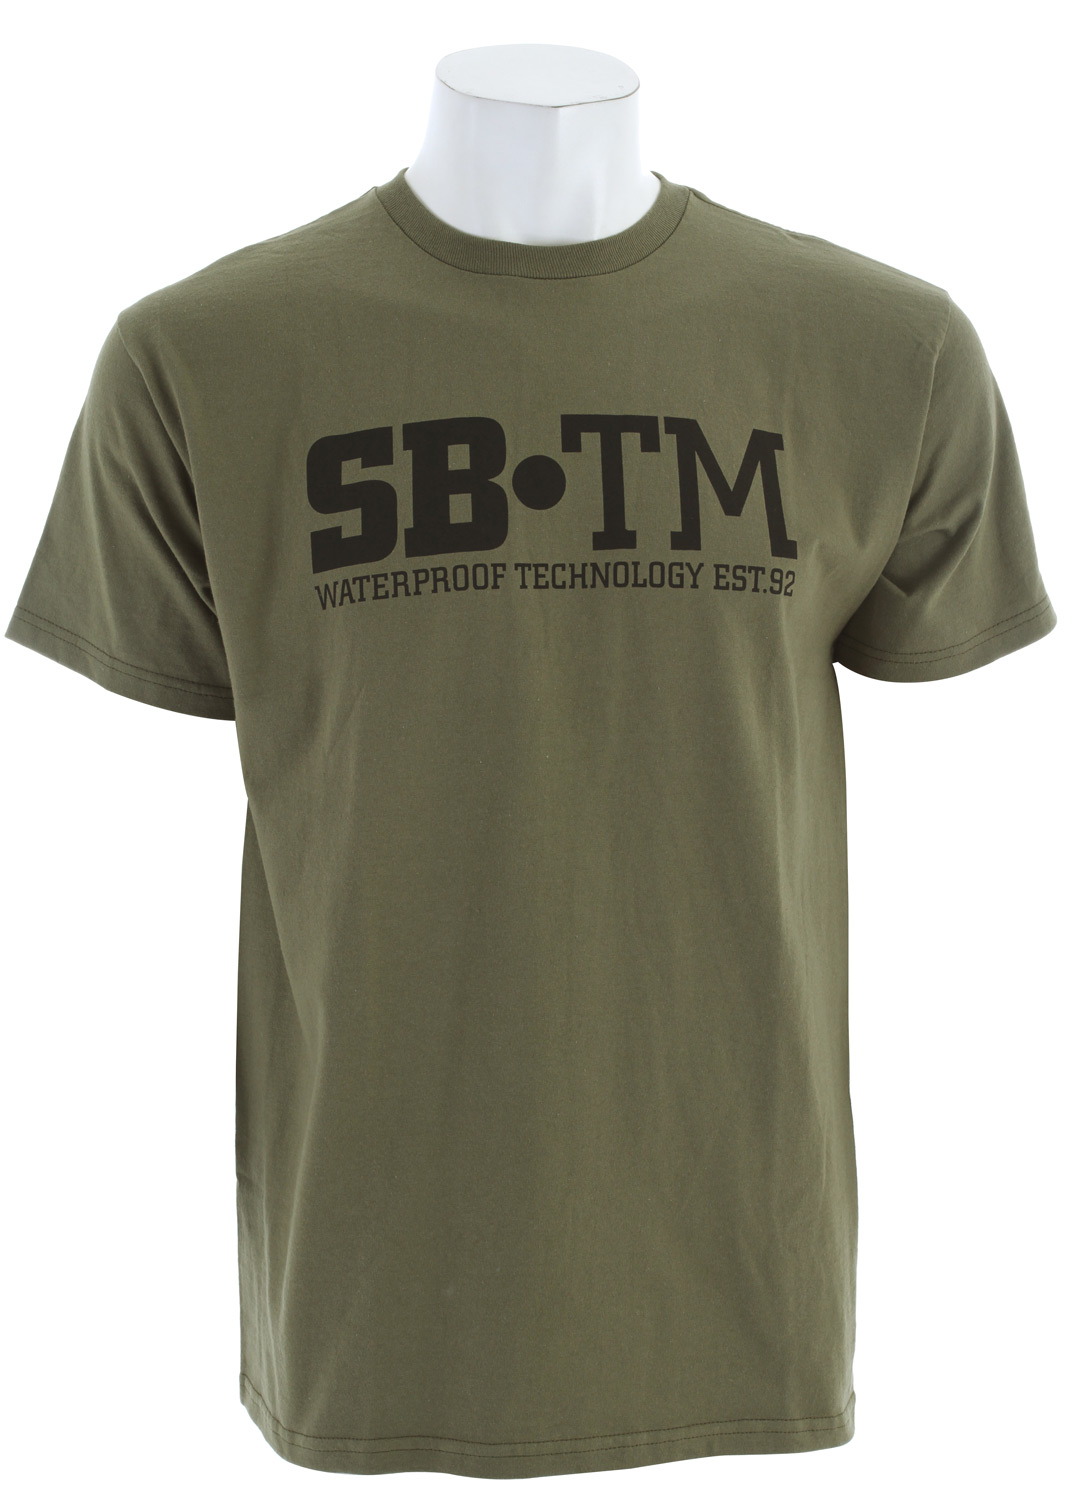 If you wanted to wear a military style look, but never felt like joining the service, then the Special Blend Cadet T-Shirt might help bring some of that look to you without the need to do the time. This tee is also made from 100% ringspun cotton for a durable and quality feel that's perfect for all-day wear.Key Features of The Special Blend Cadet T-Shirt:  Slim Fit  Crew Neck  Short Sleeve  Revolver Slim fit  100% combed ringspun cotton  4.3 oz - $9.95